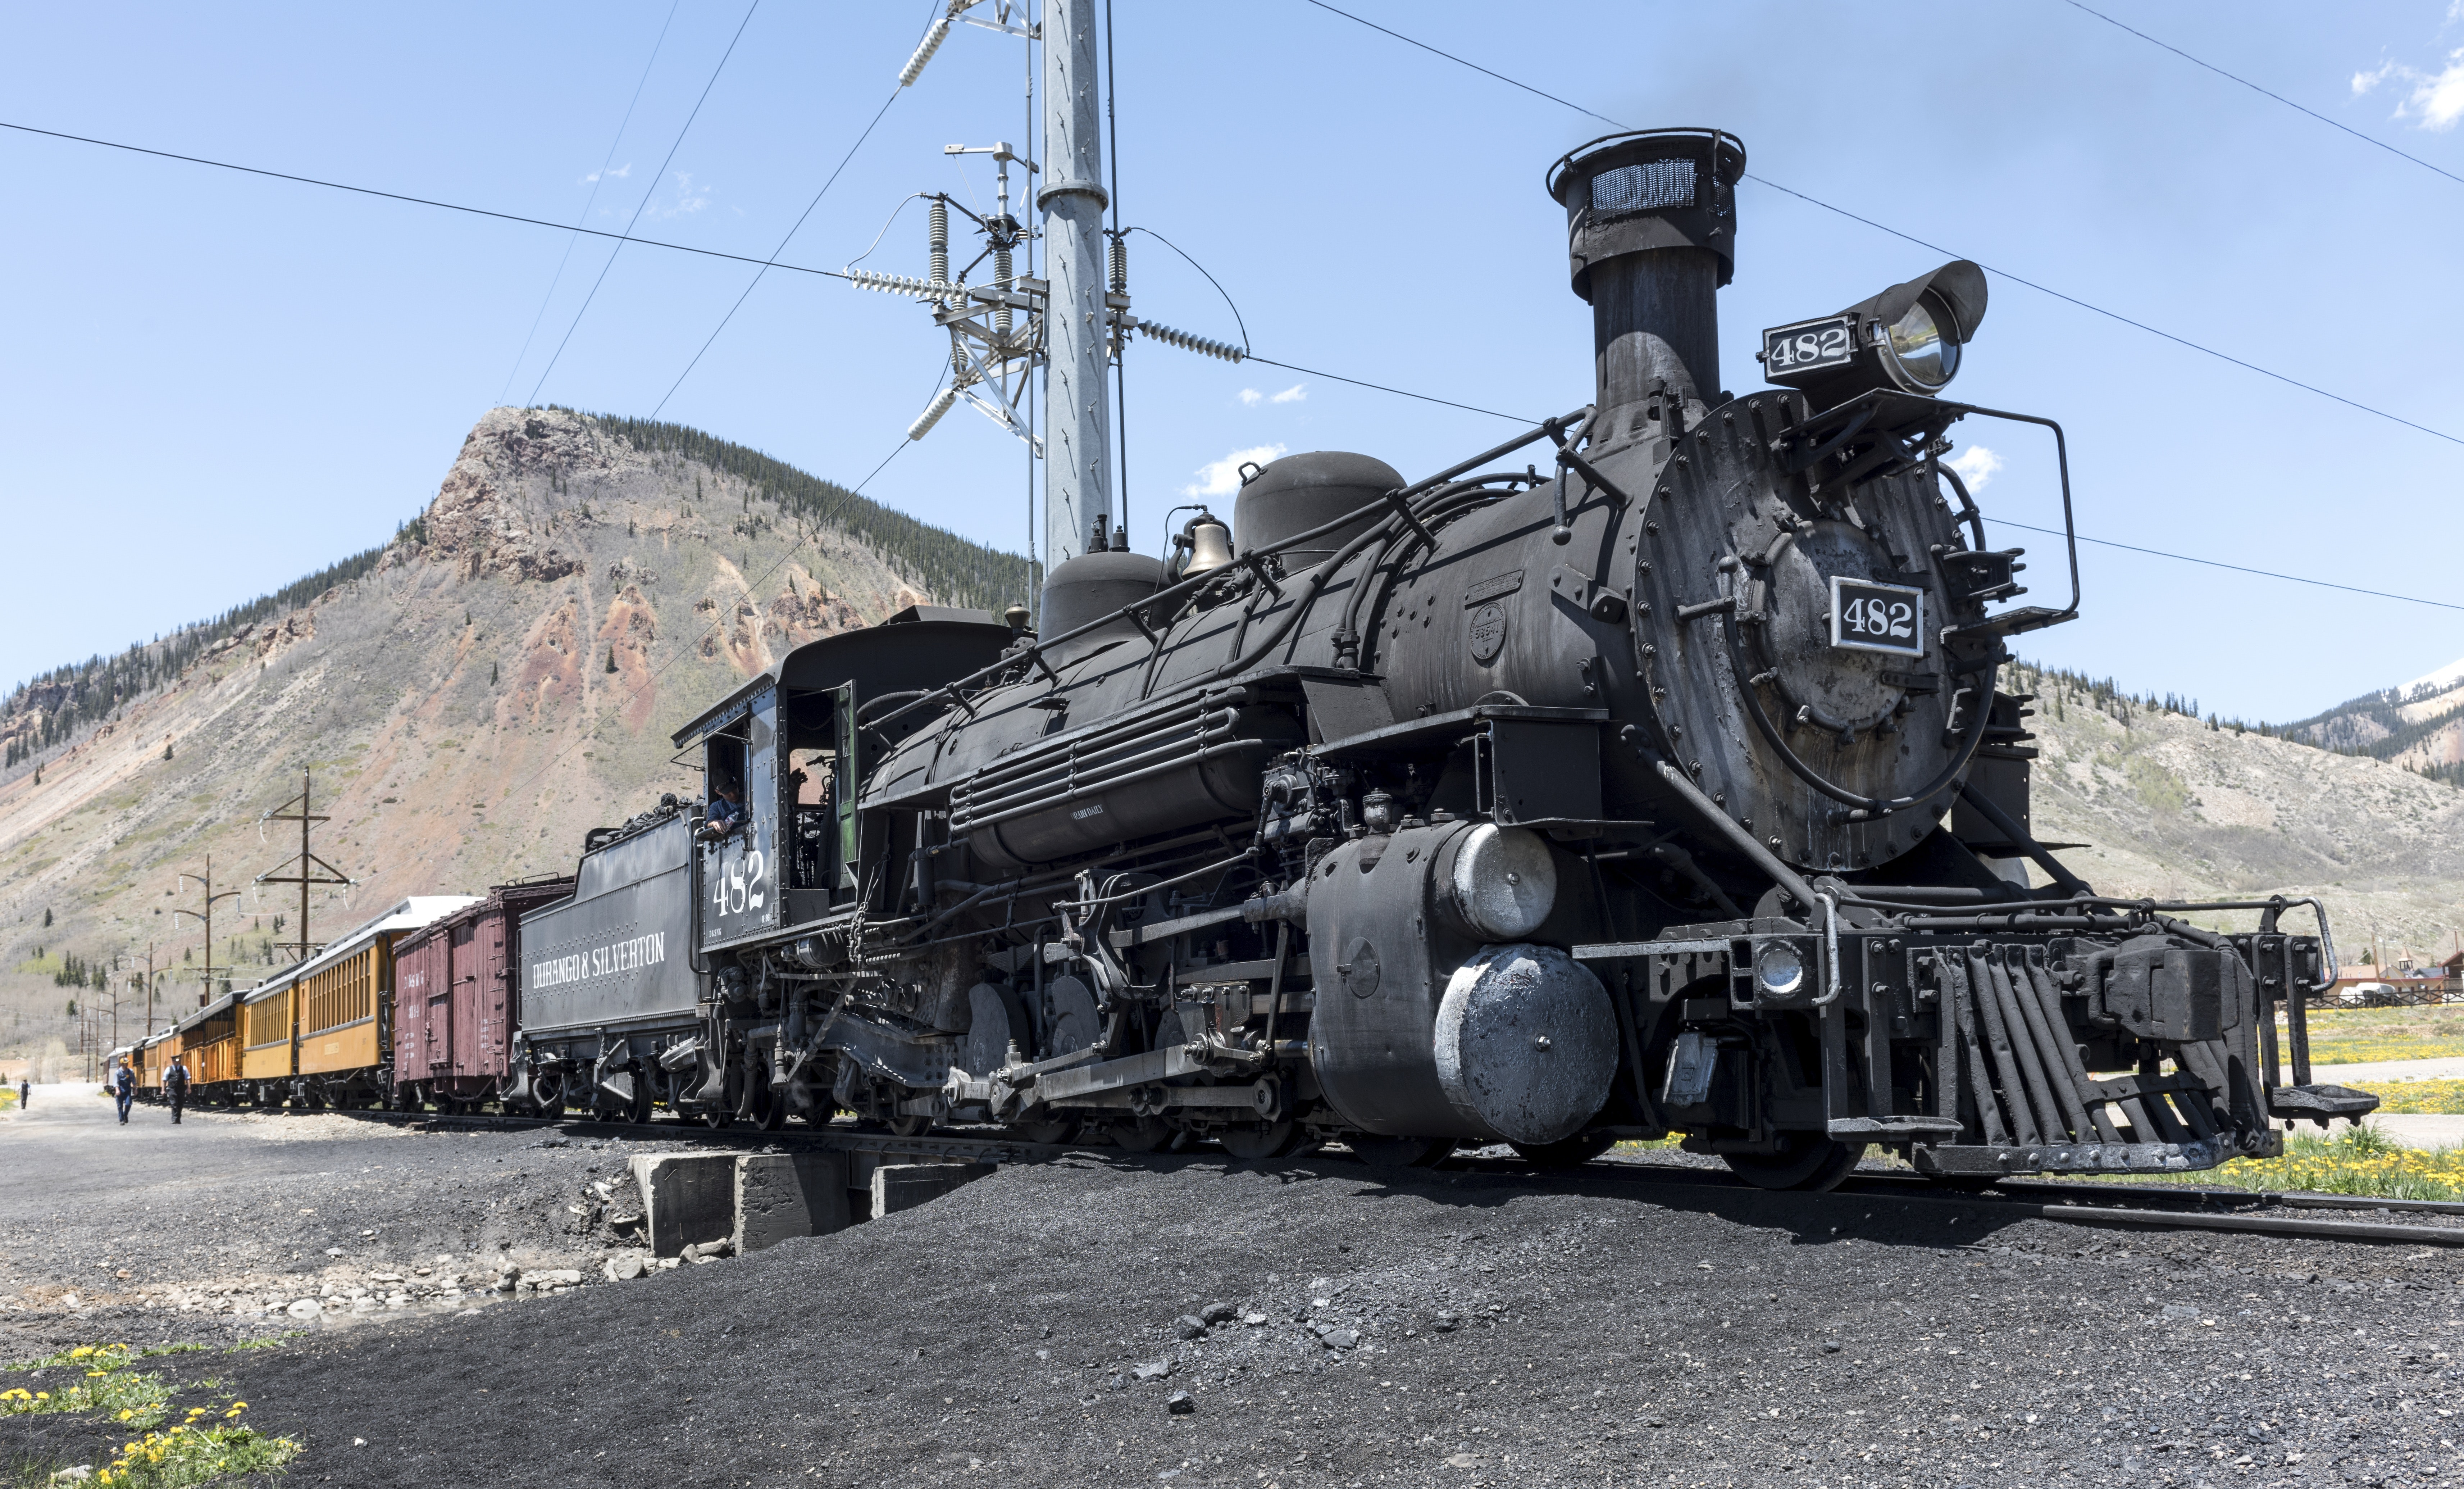 Freight Train during Day, Coal, Track, Vehicle, Utility pole, HQ Photo